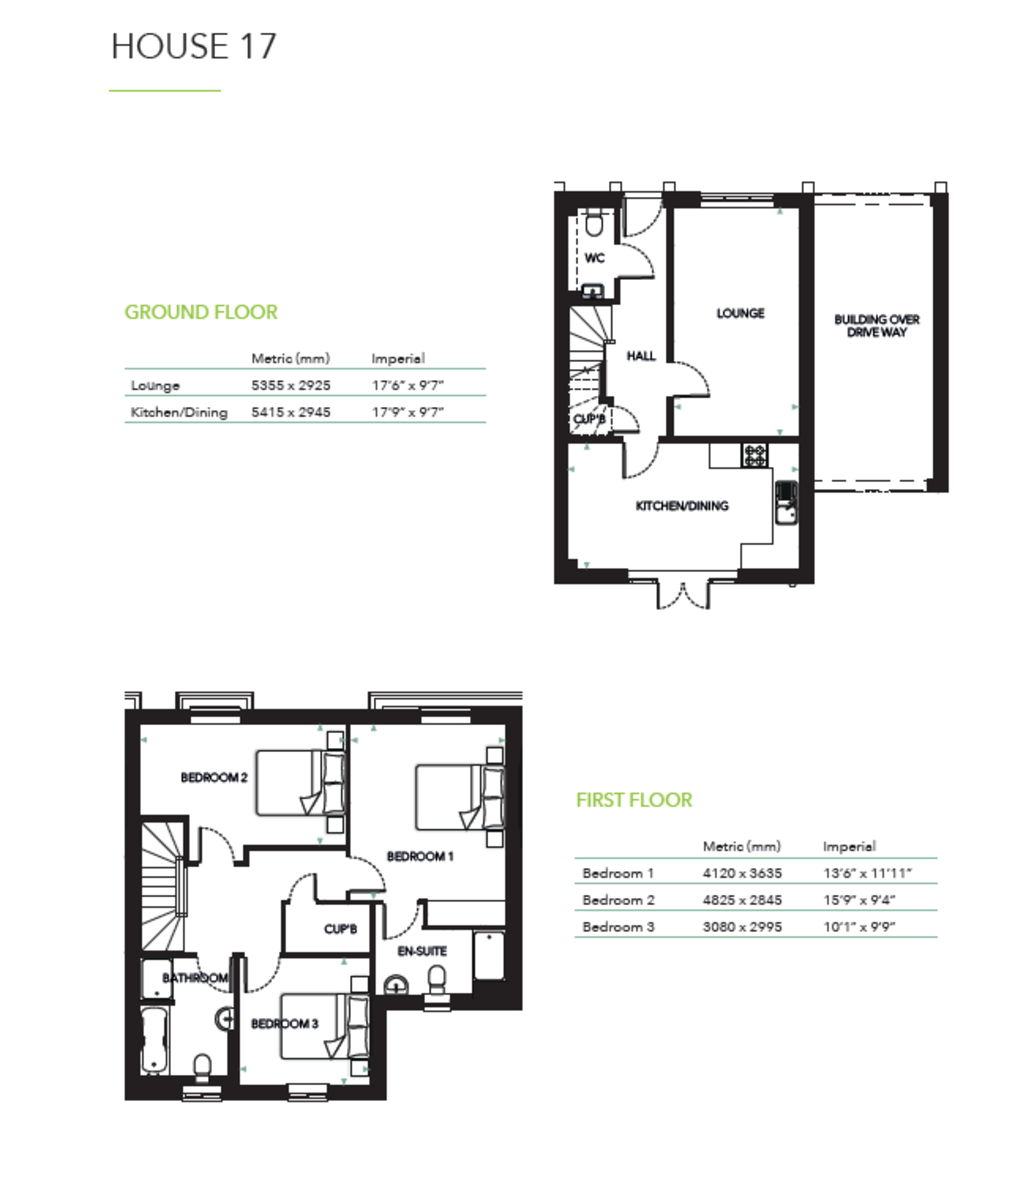 Long Melford, Sudbury, Suffolk Floorplan